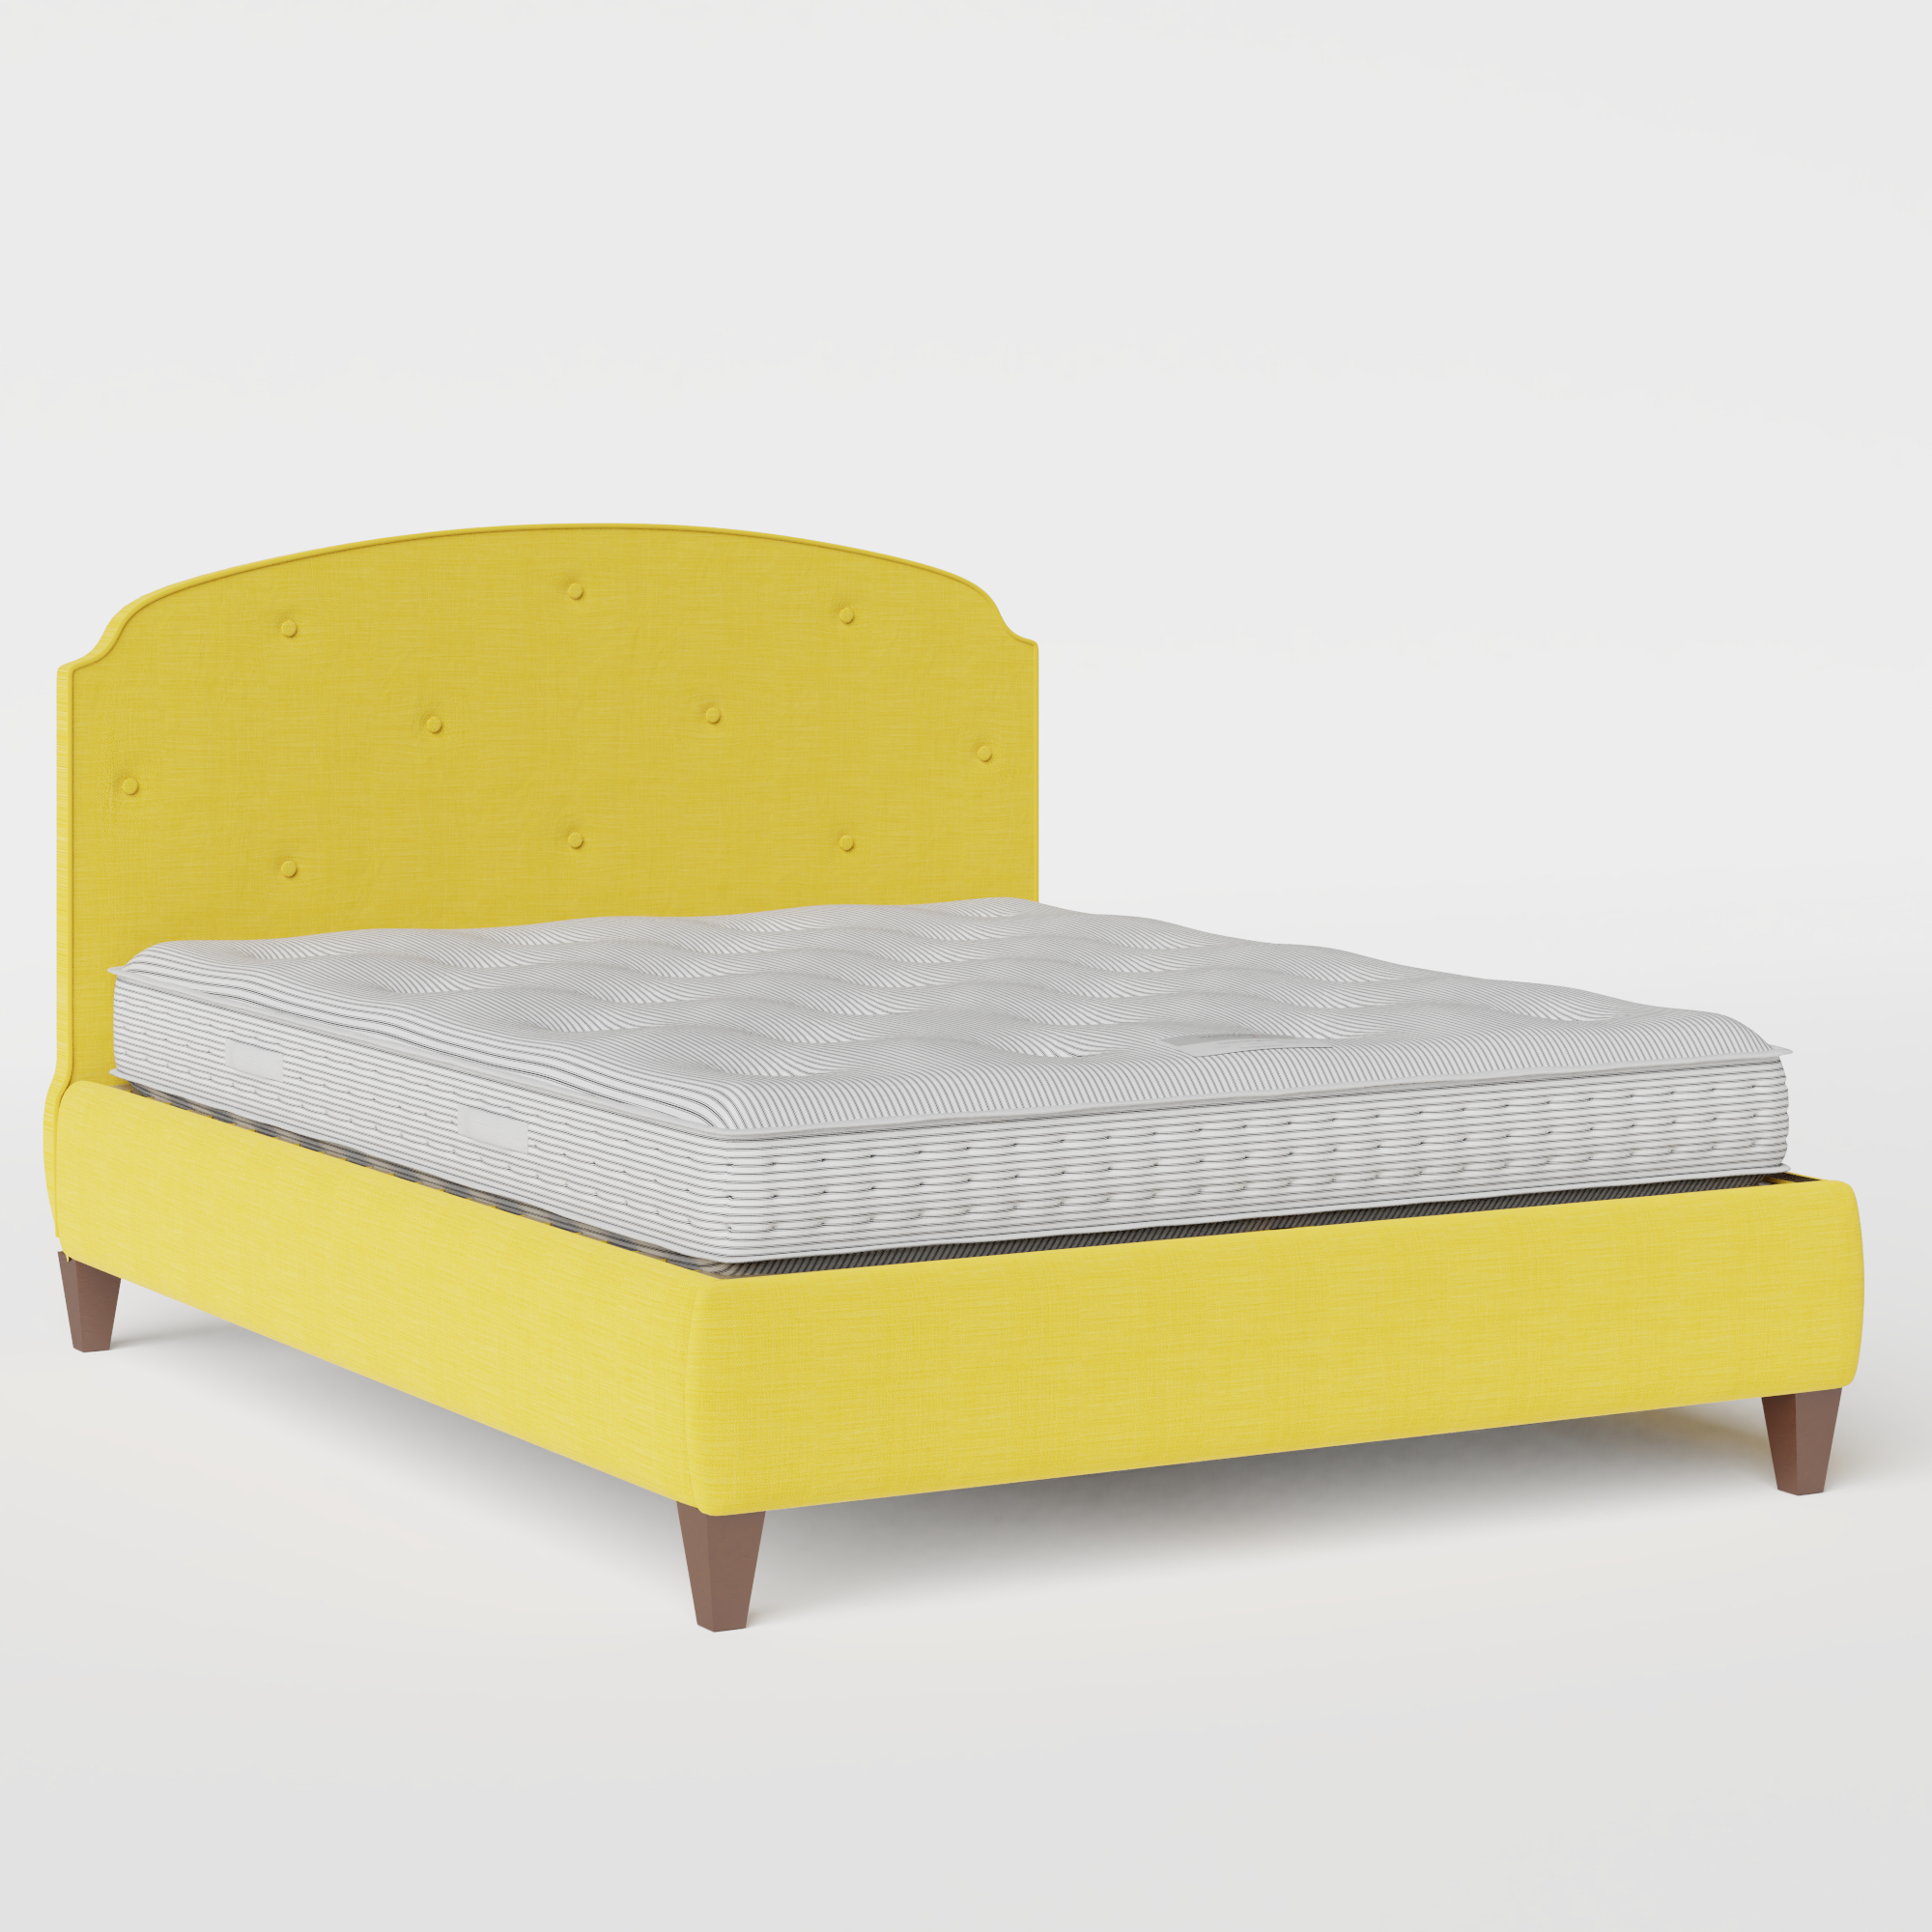 Lide Buttoned Diagonal upholstered bed in sunflower fabric